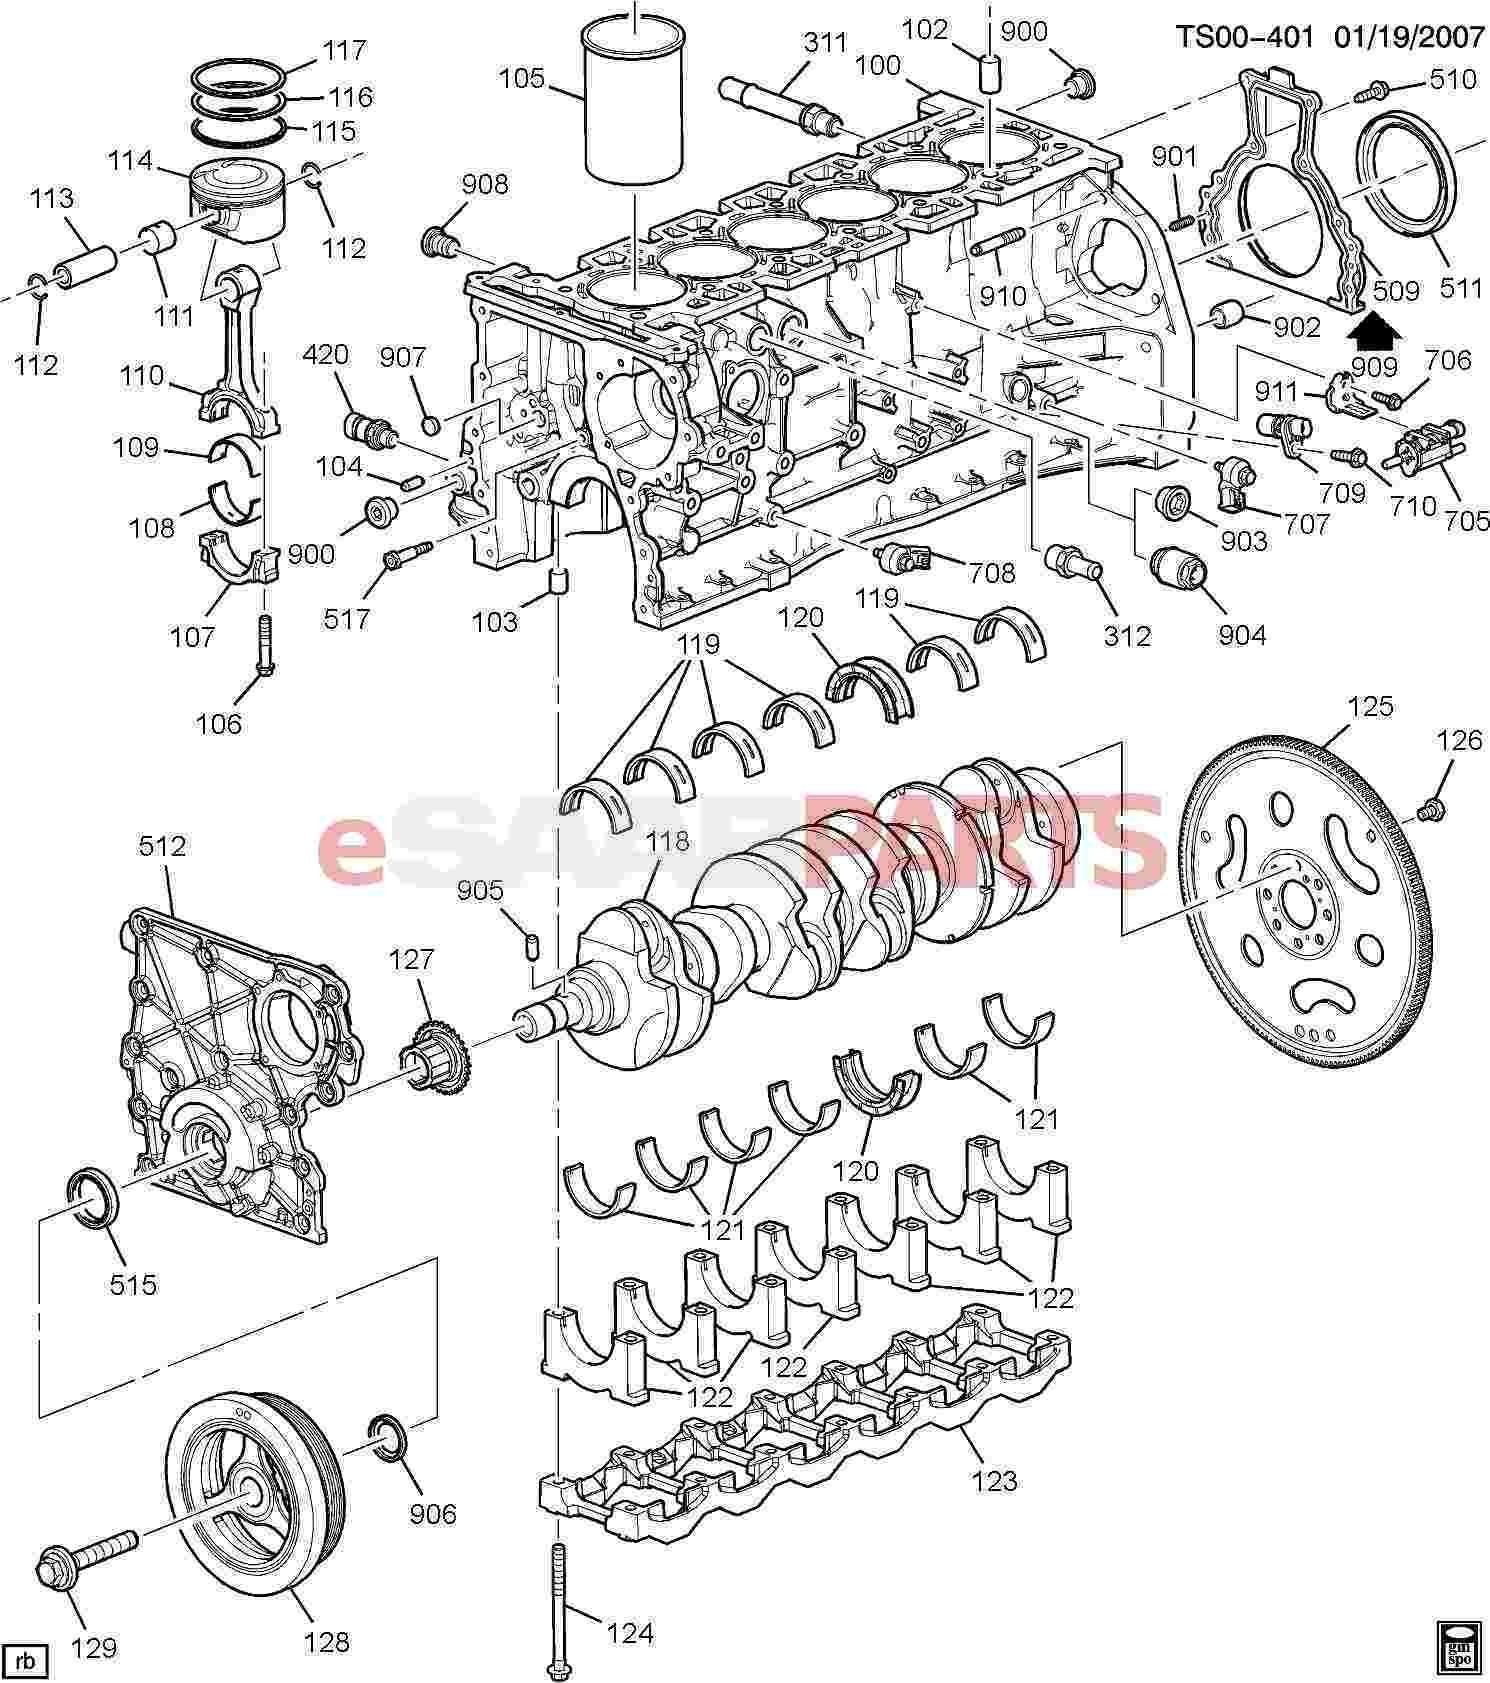 Car Engine Labeled Diagram | My Wiring DIagram